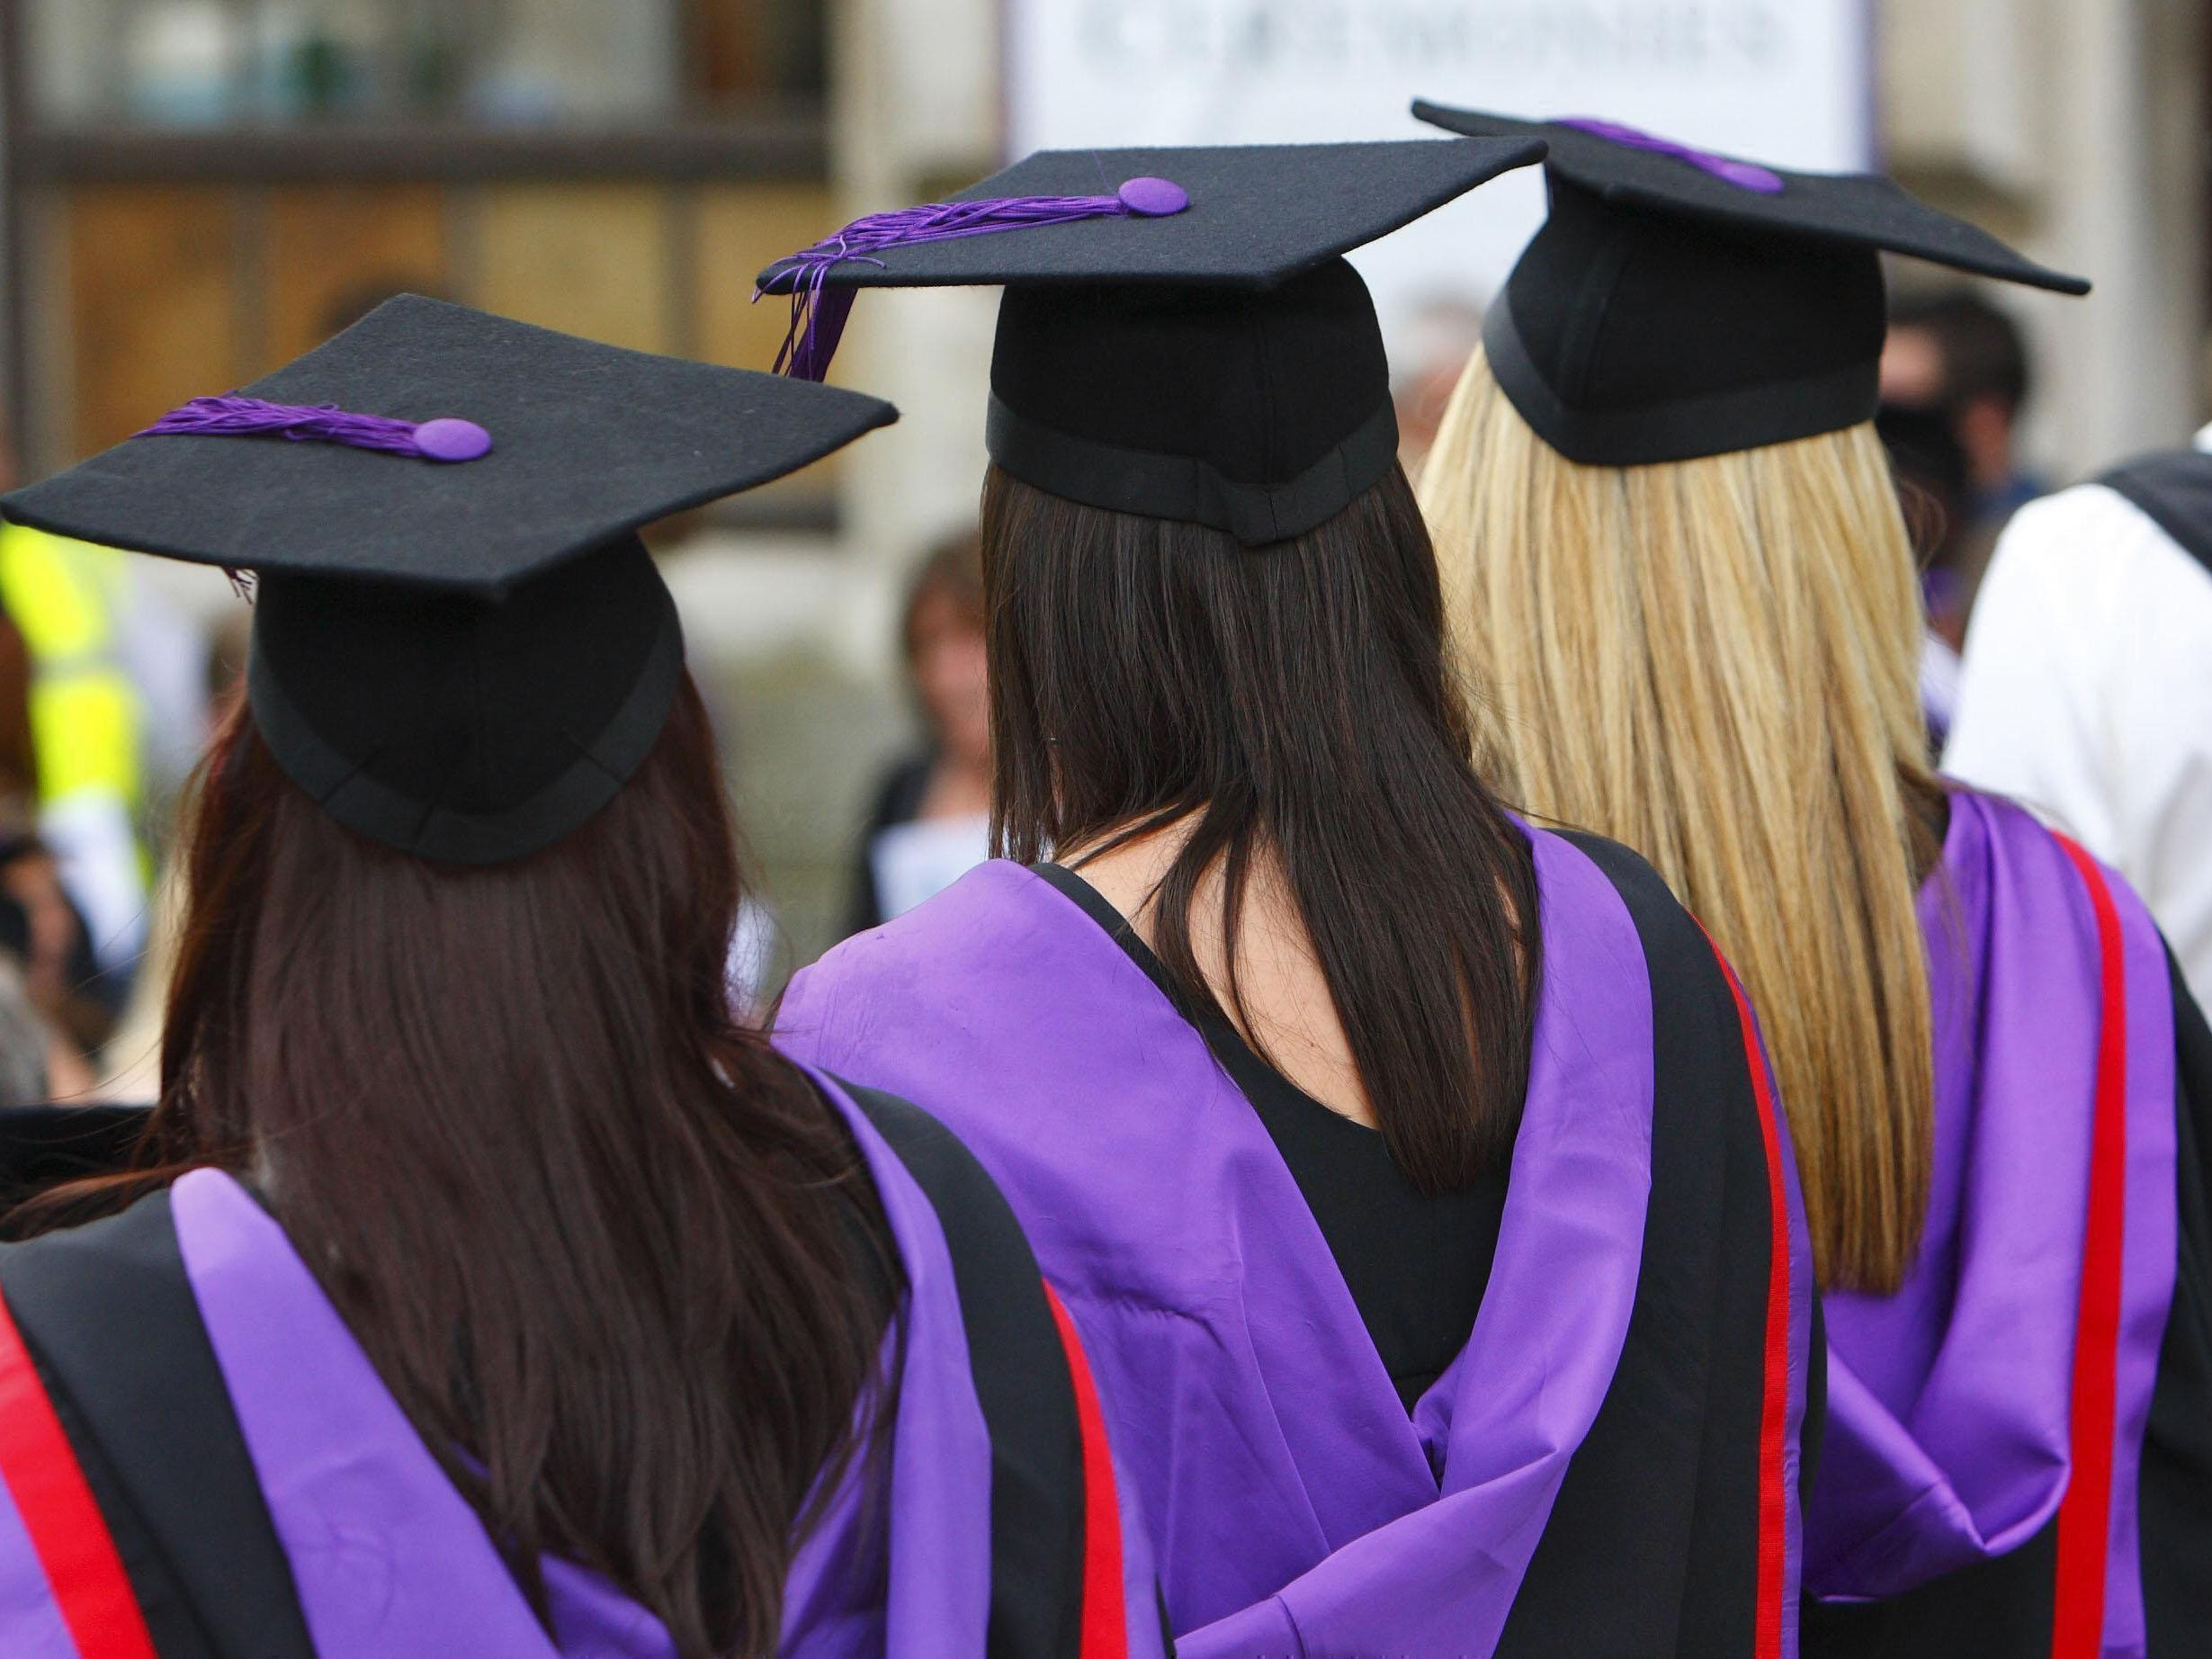 Half of students rated as 'disadvantaged' not from low-income background – study